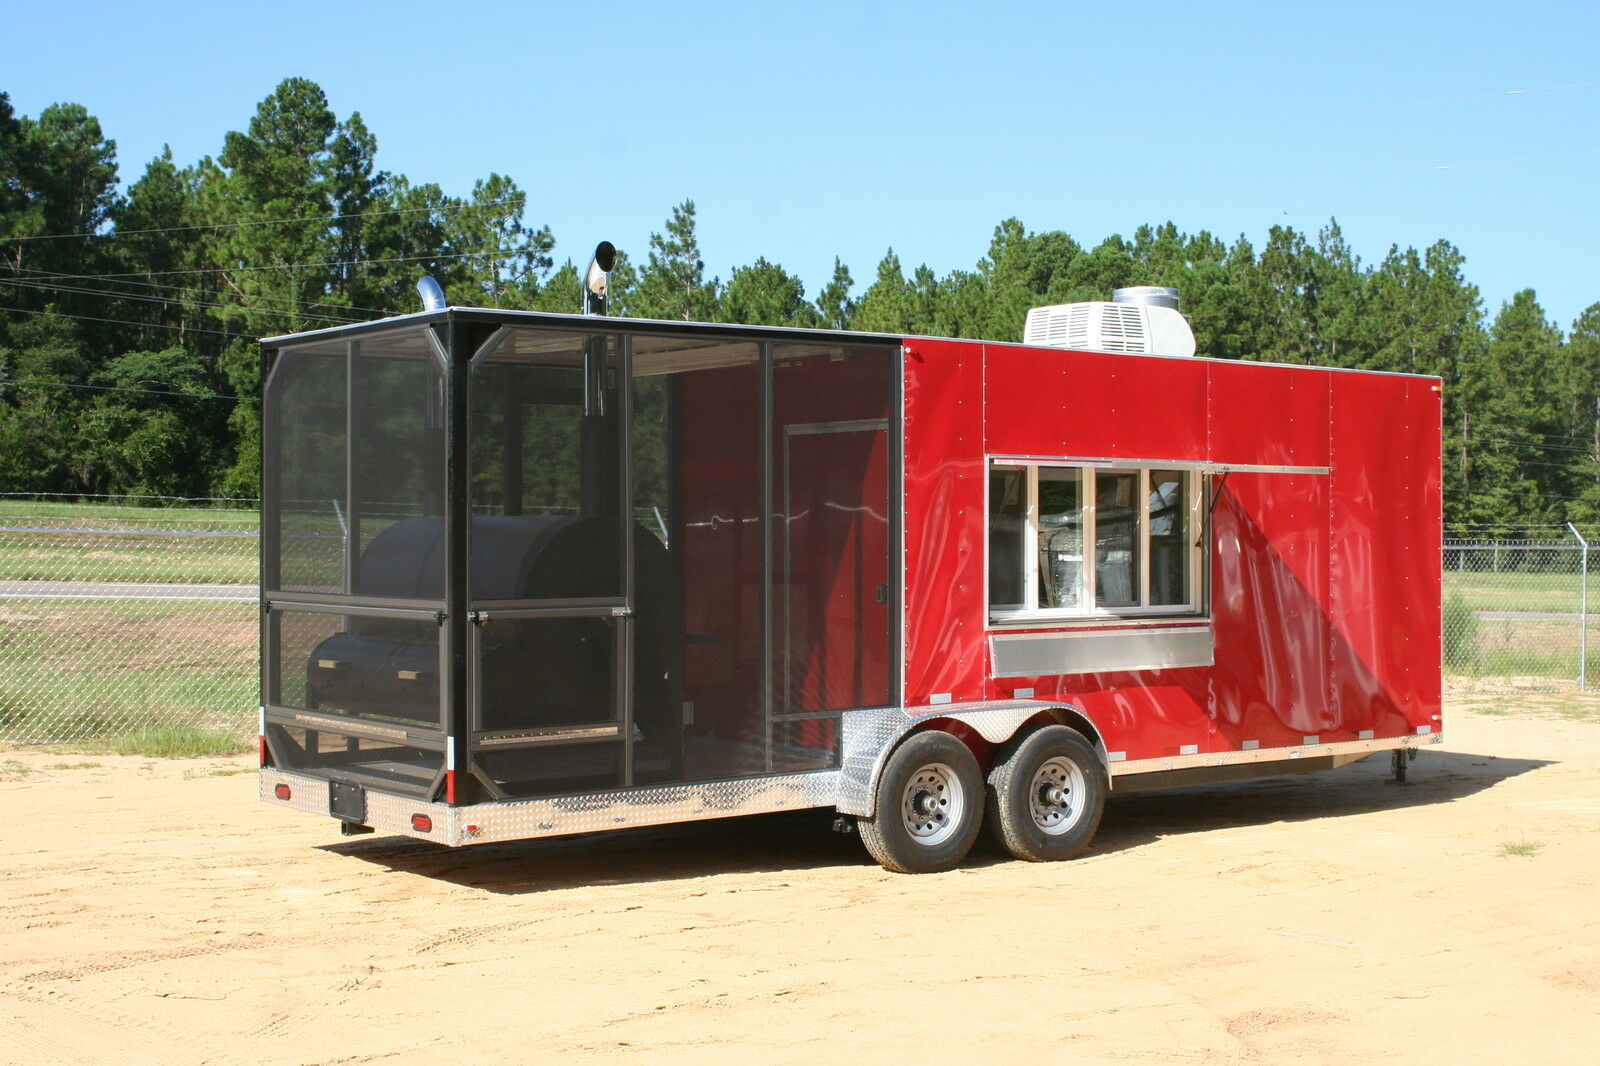 2016 Barbeque Concession Trailer Mobile Kitchen Deluxe Model 35 Picclick